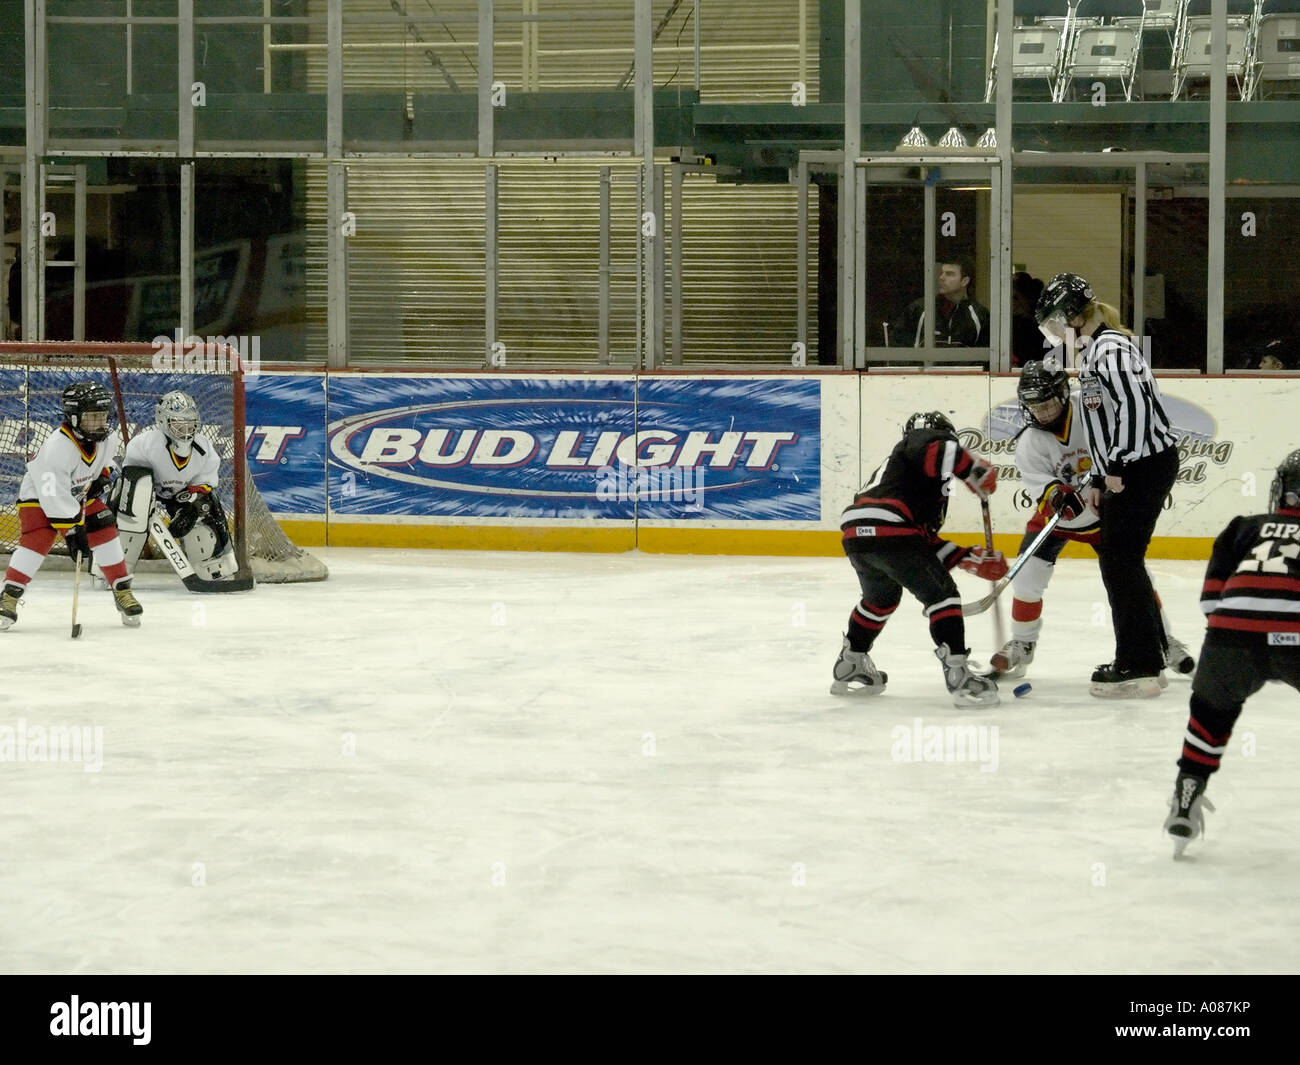 Young hockey players set up for a faceoff during their game - Stock Image